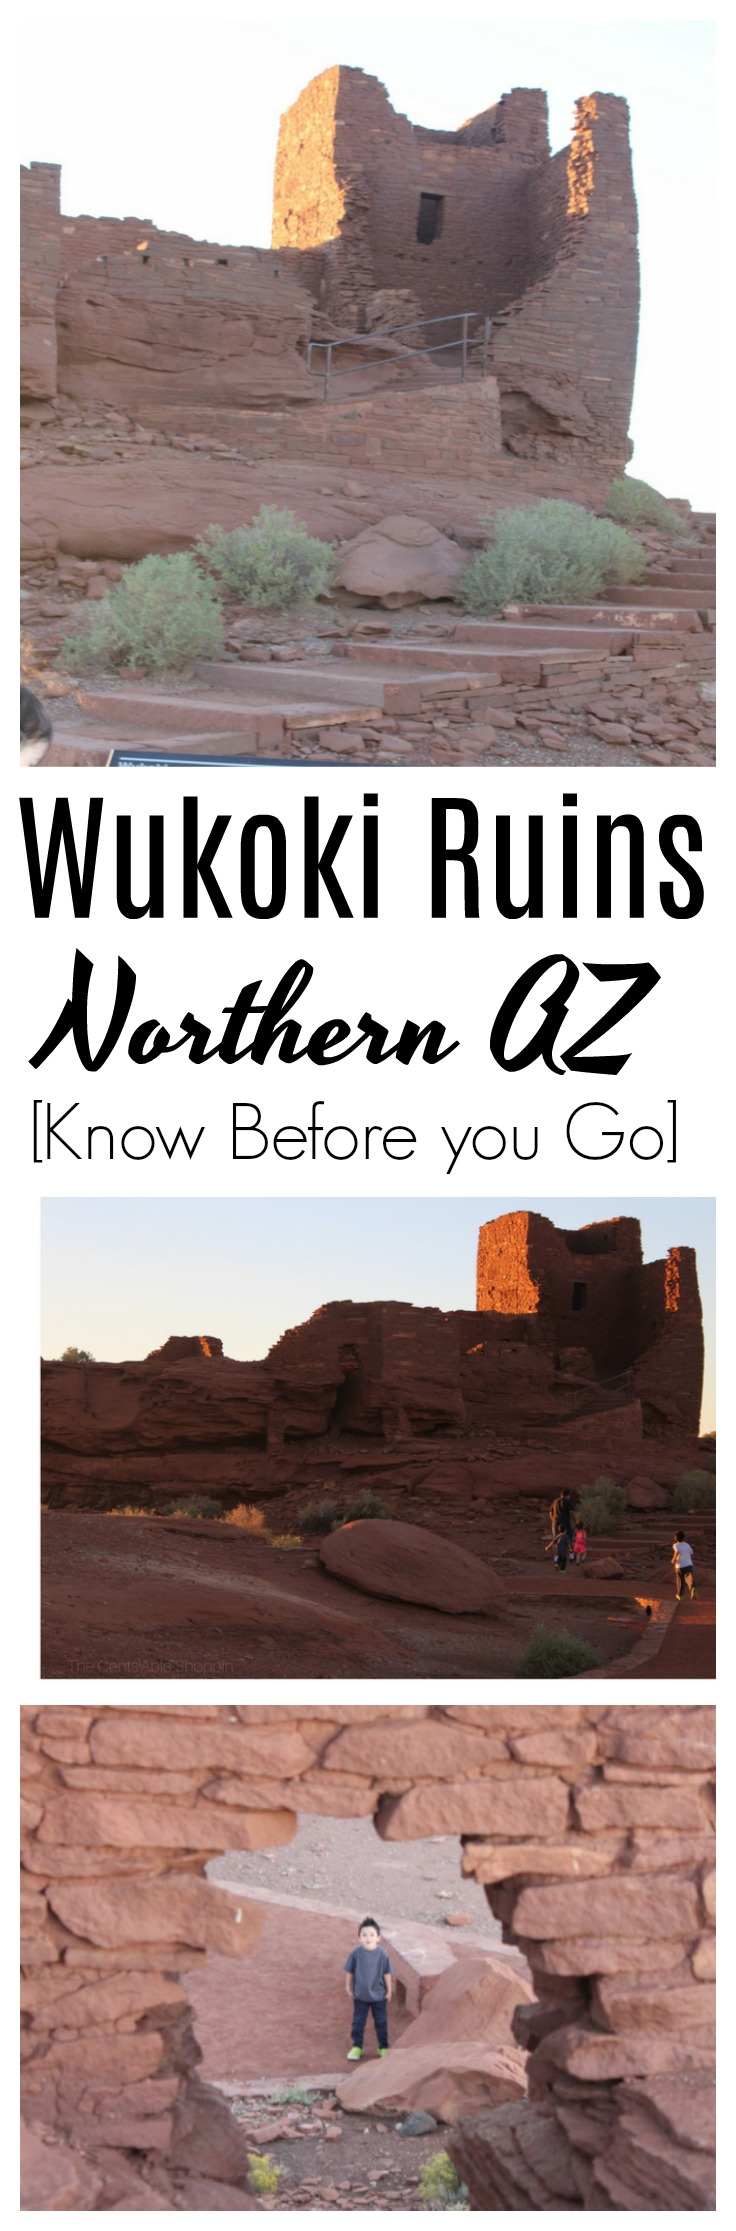 The Wukoki Pueblo Ruins are a really interesting and unique place to visit in Northern, Arizona. Find out what you need to know before you go!  #arizona #travel #flagstaff